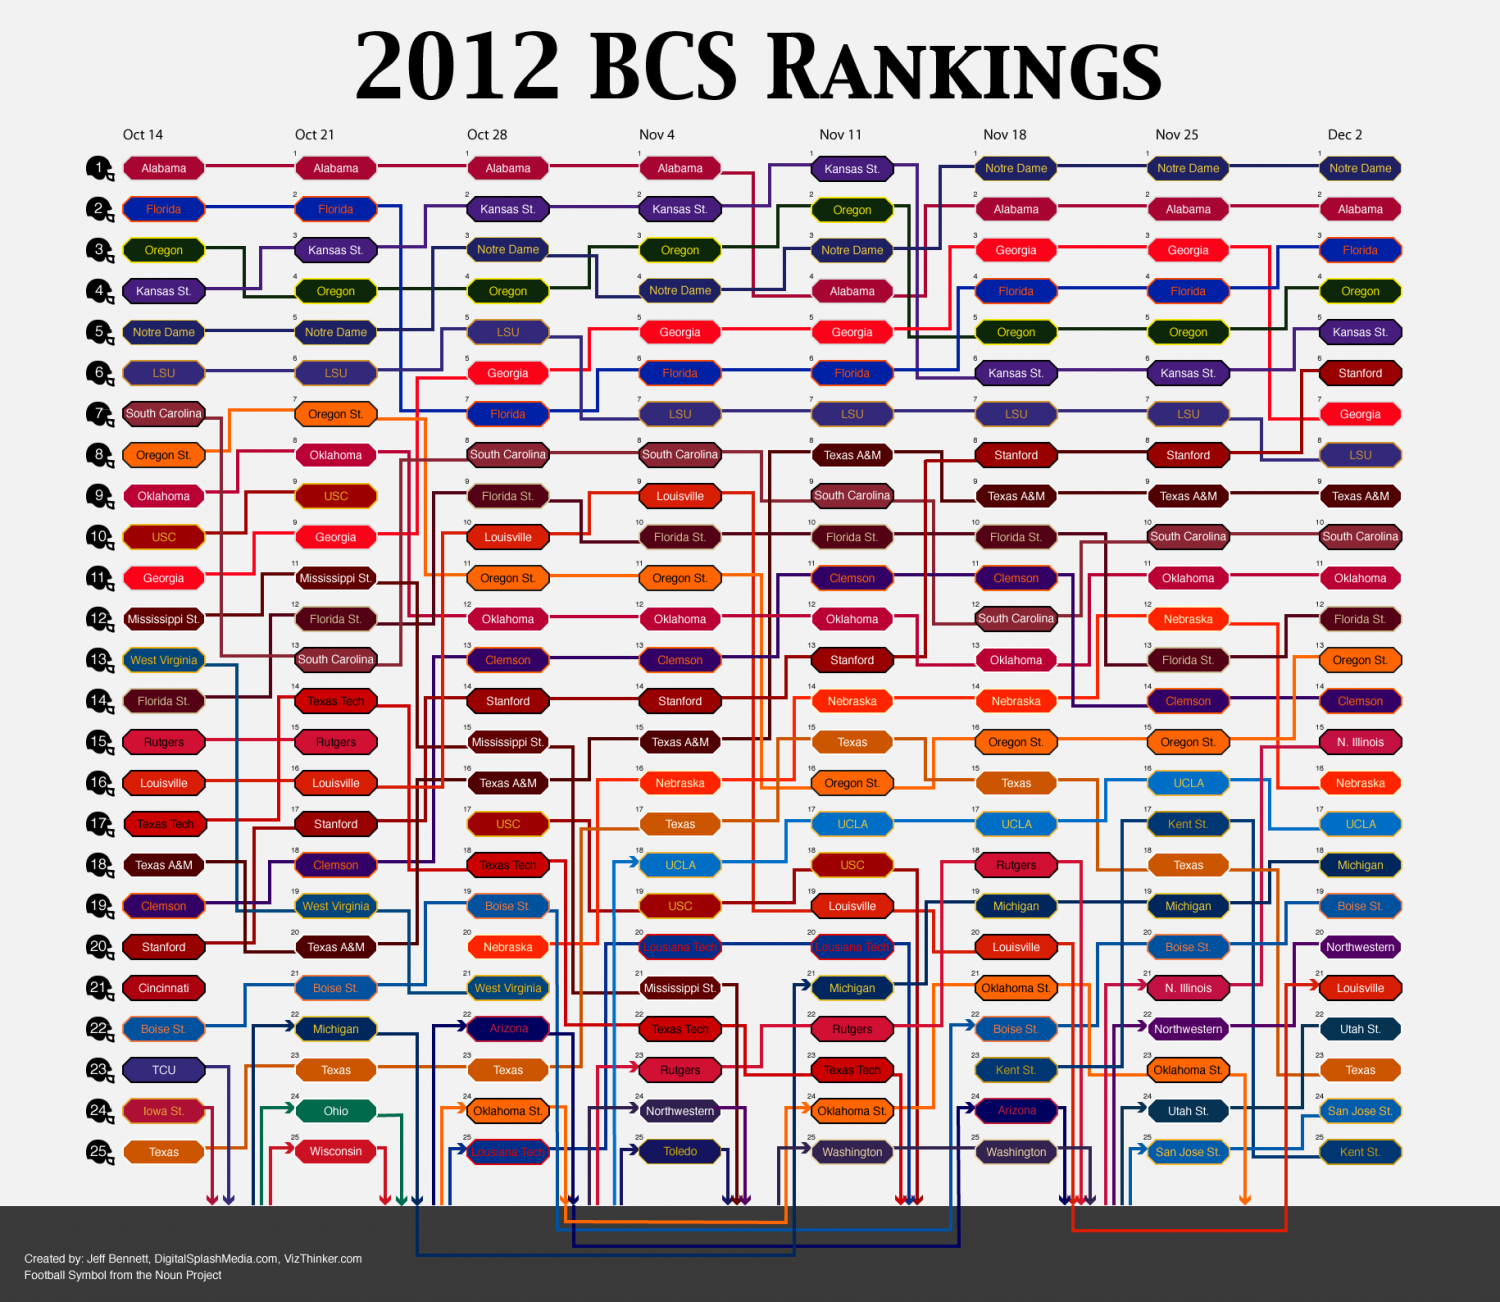 2012 BCS College Football Rankings